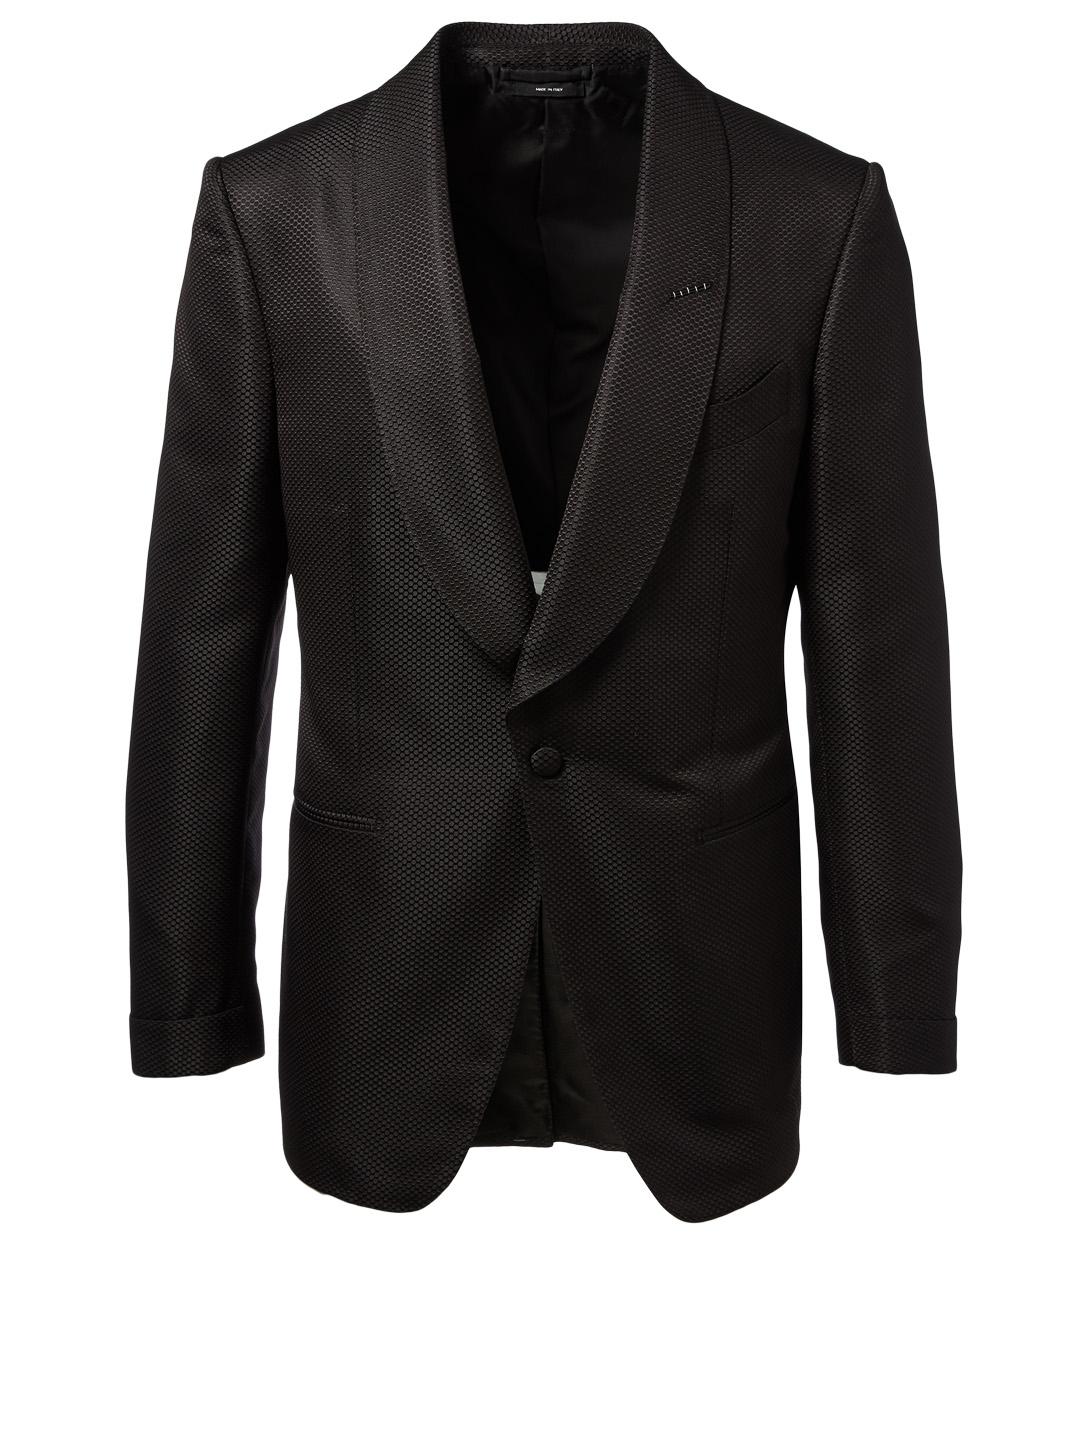 TOM FORD Honeycomb Sharkskin Jacket Men's Black